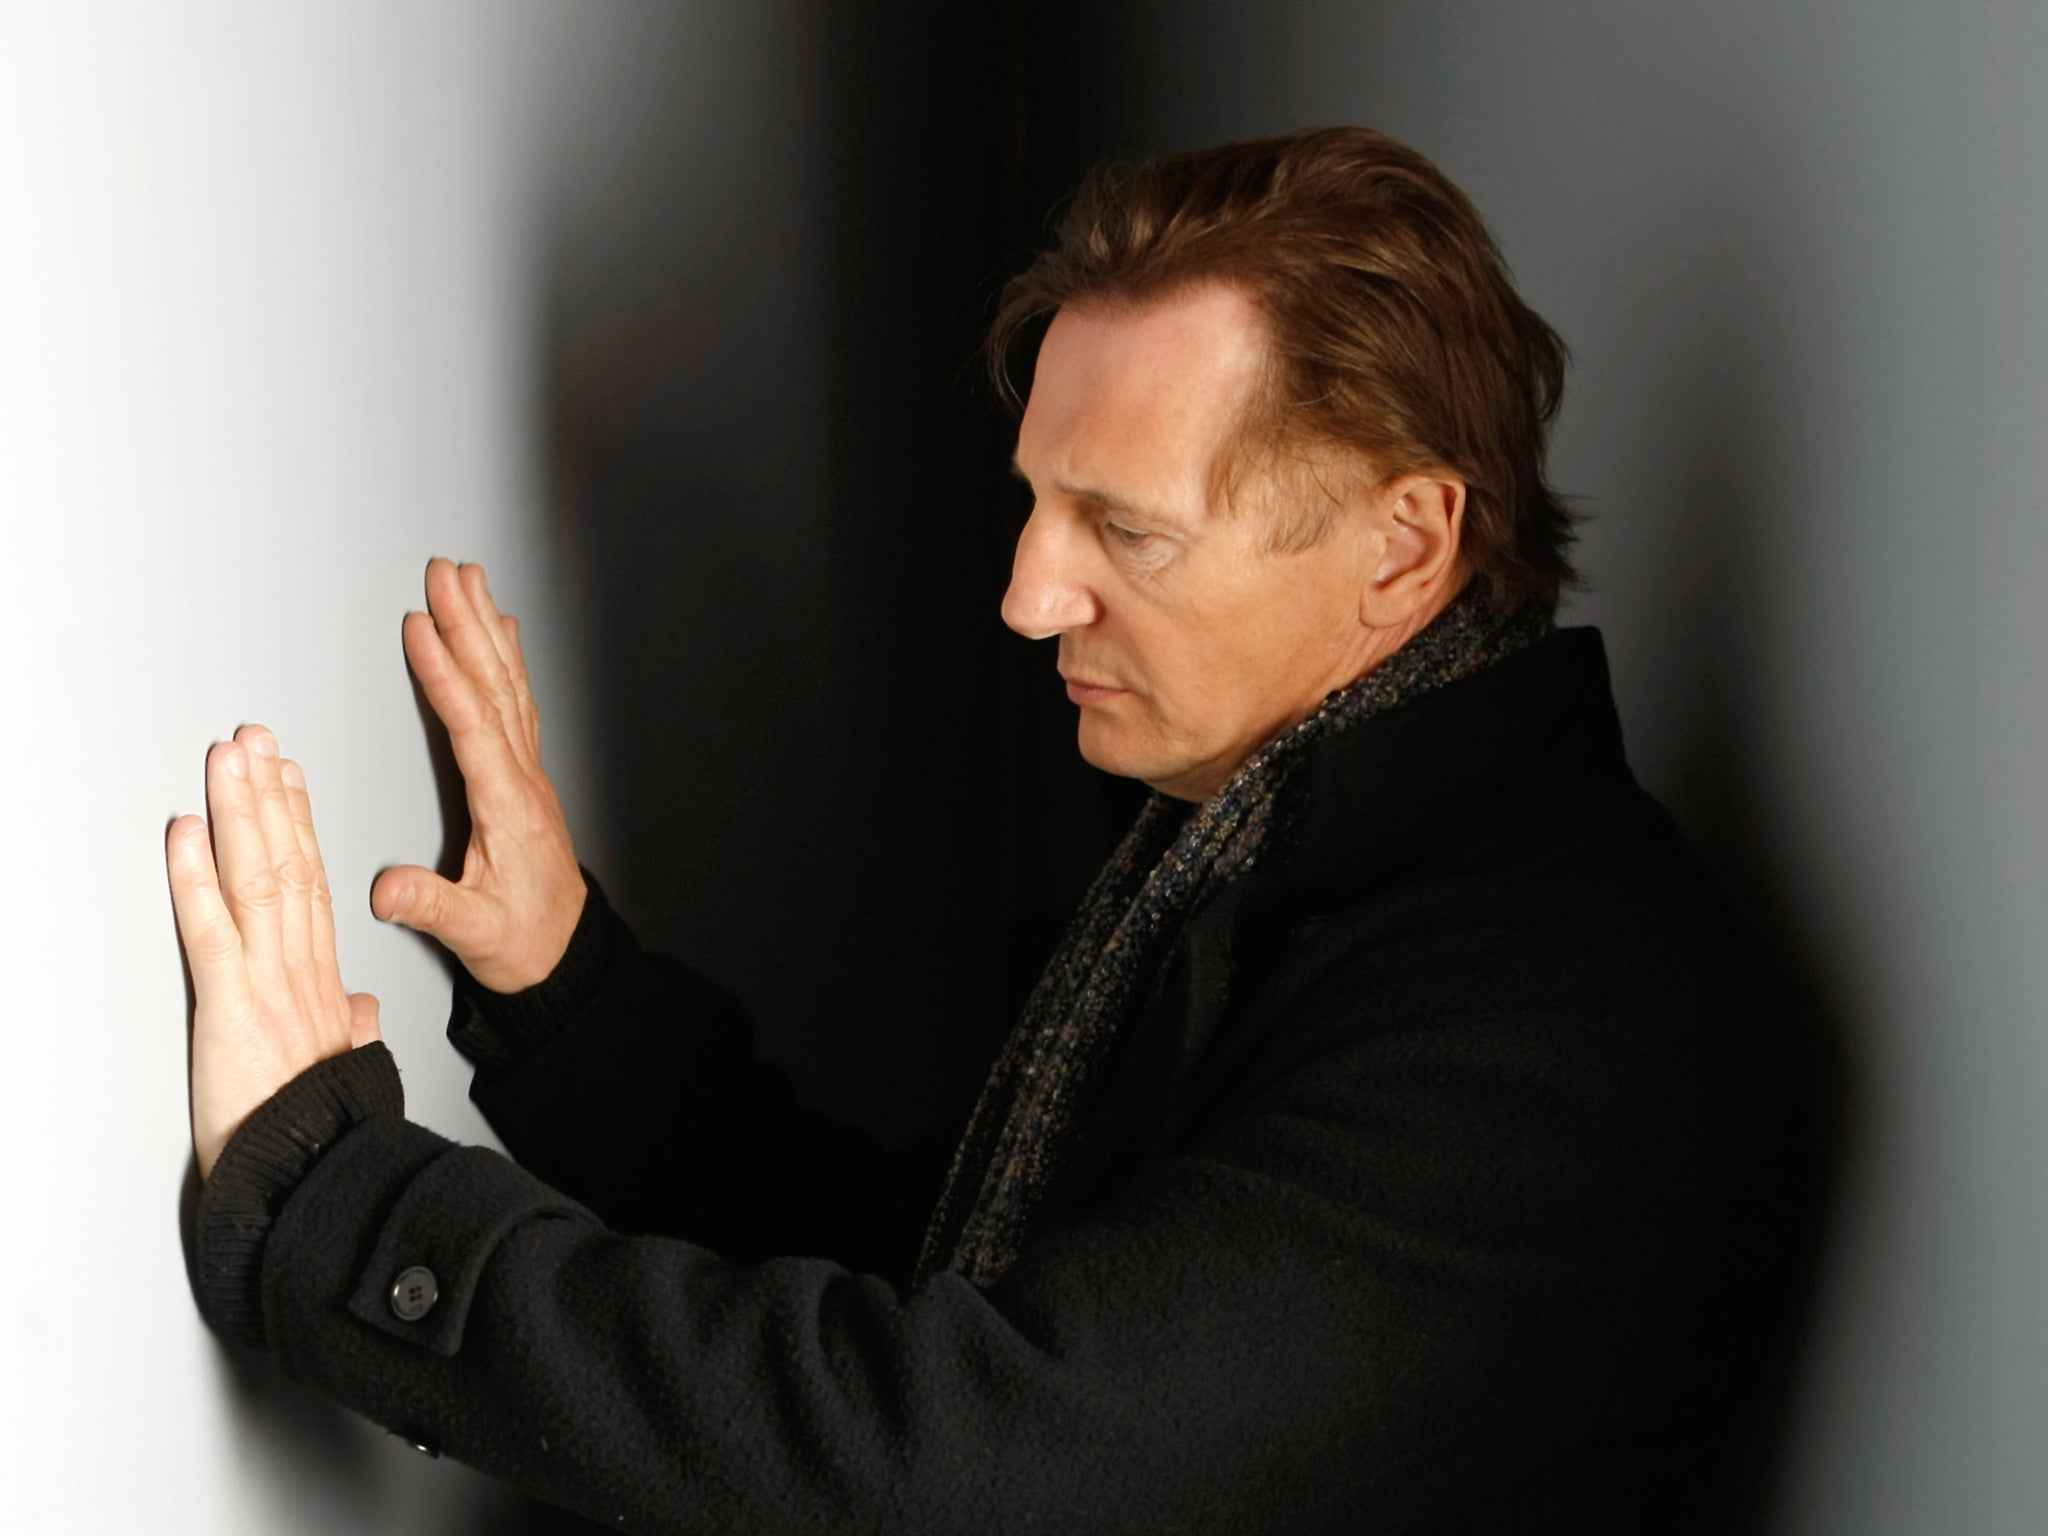 Liam Neeson interview: Hard man actor on Bono, Ralph Fiennes and ...